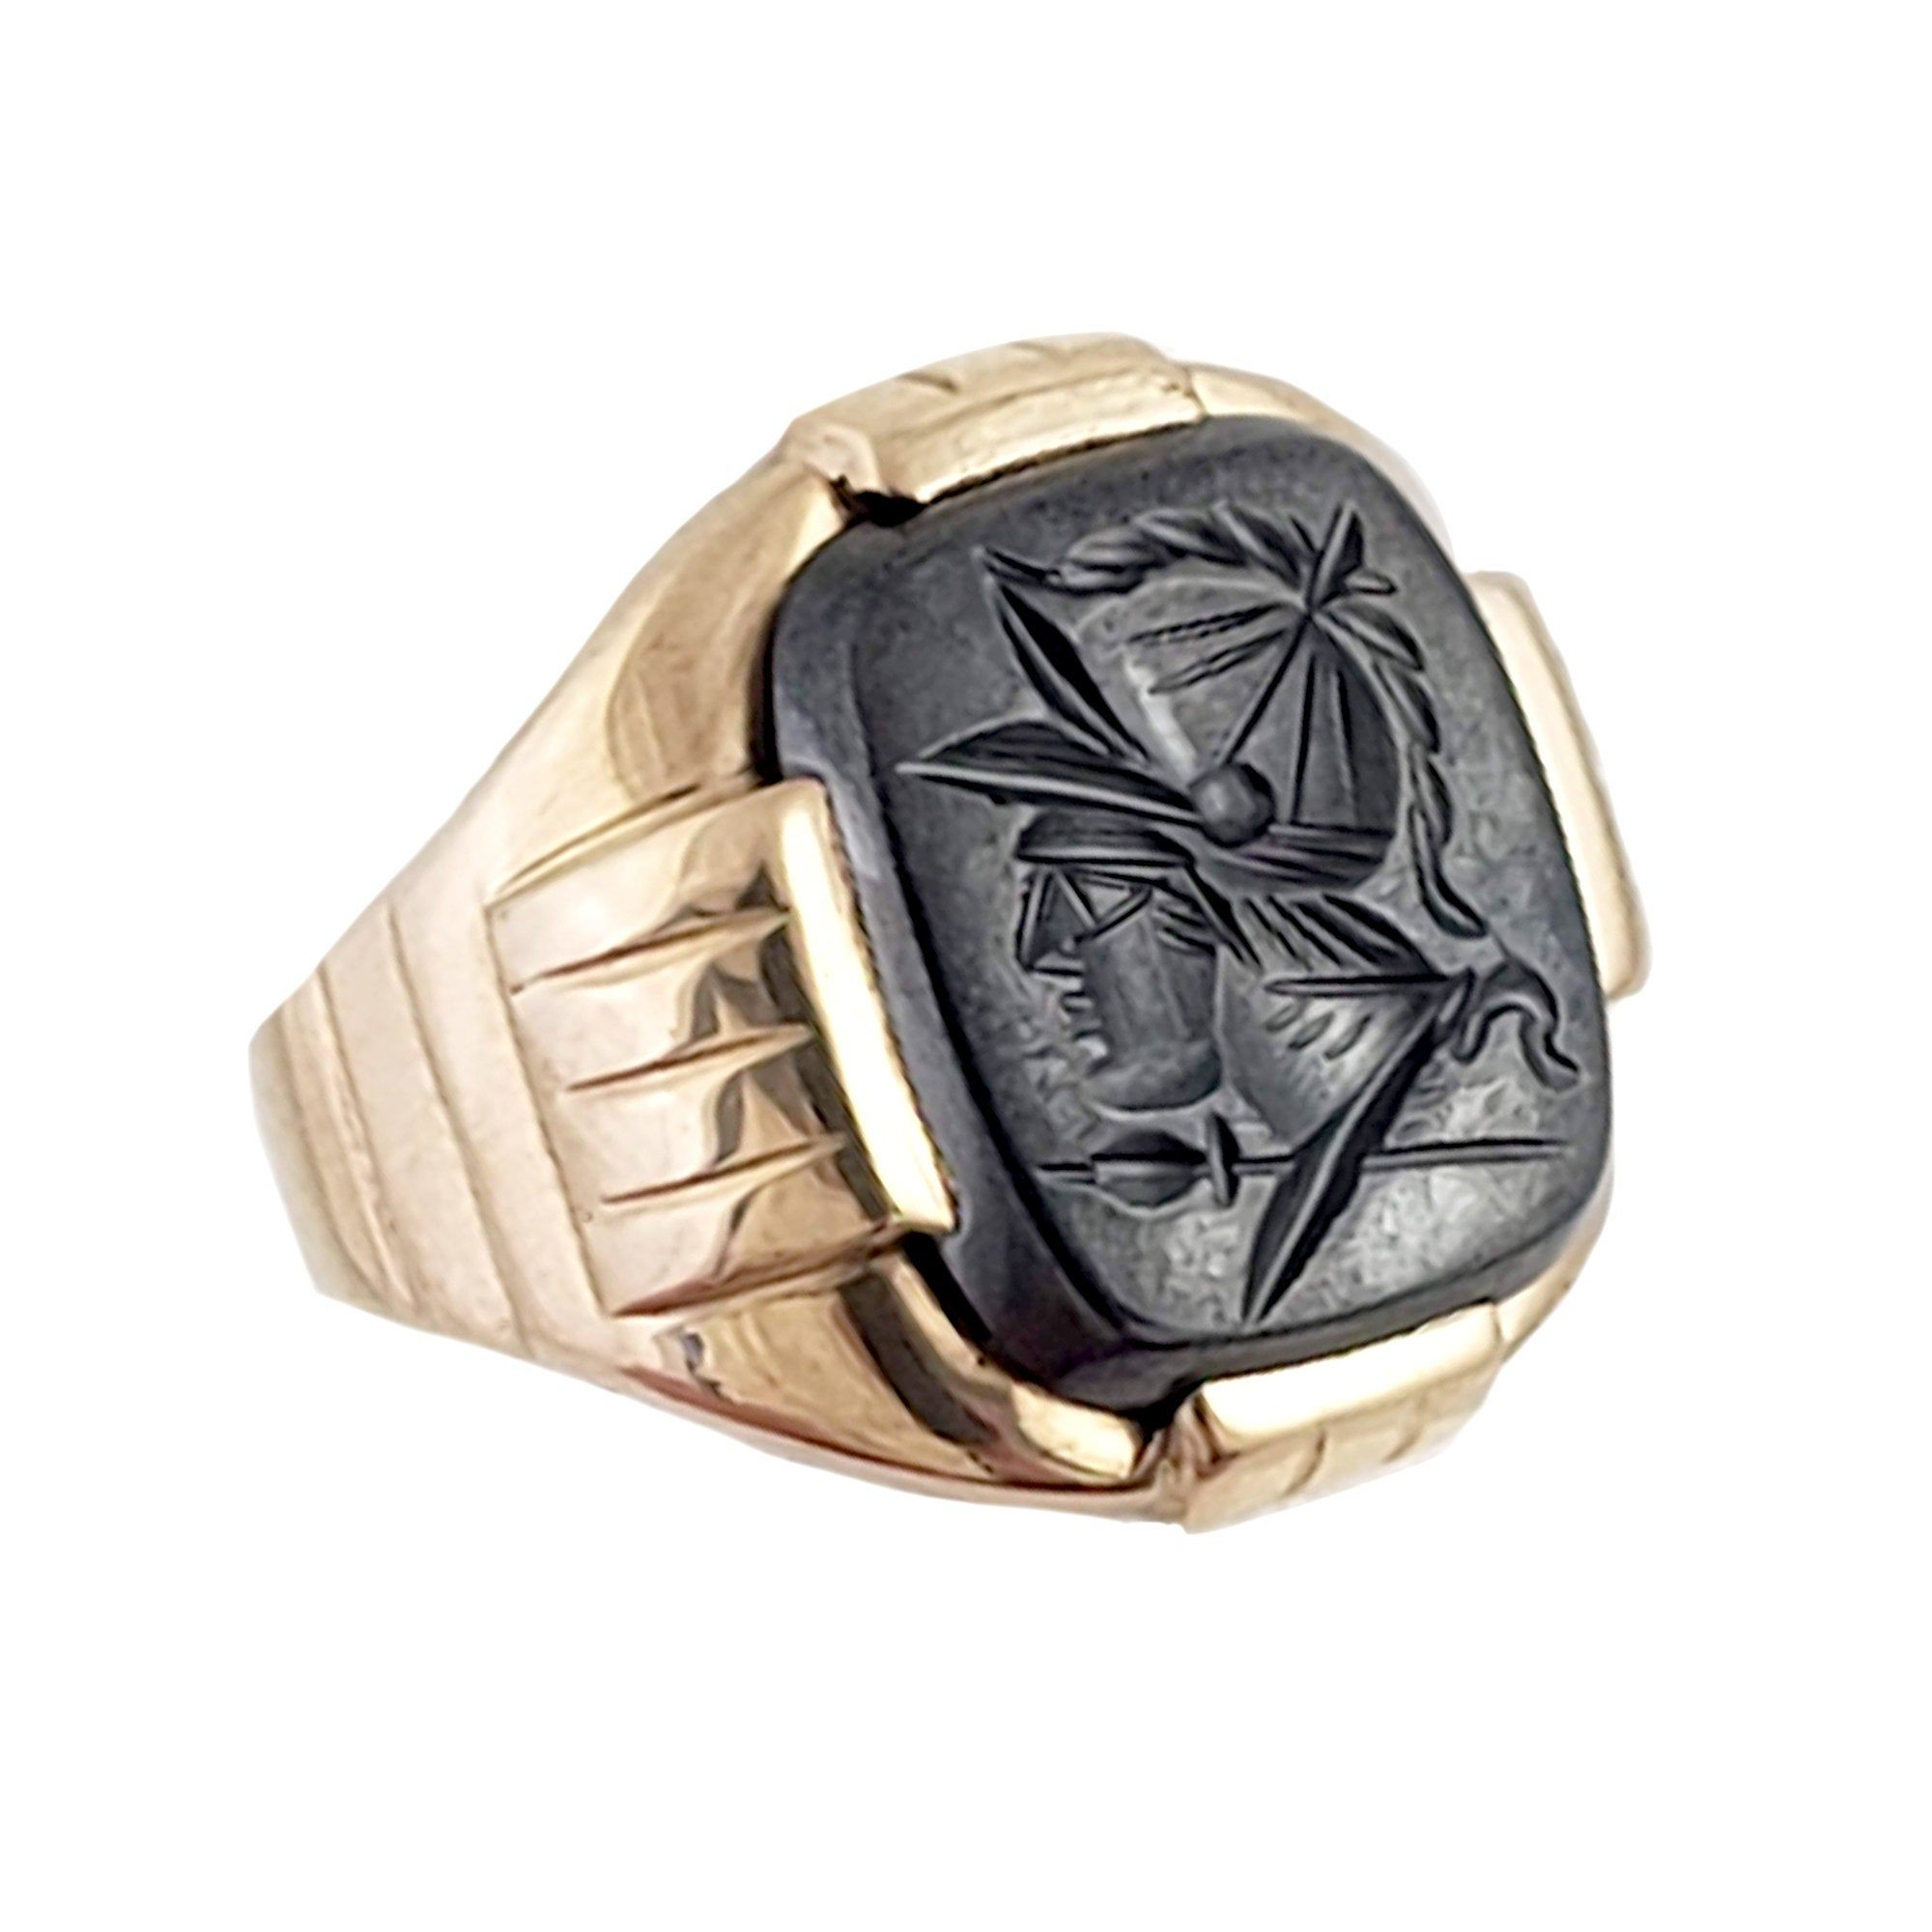 Intaglio Ring 10k Gold Hematite Ring Gold Roman Soldier Ring Ancient Design Occult Ring Handmade Hand Carved RIng Wide Mens Ring Cigar Ring